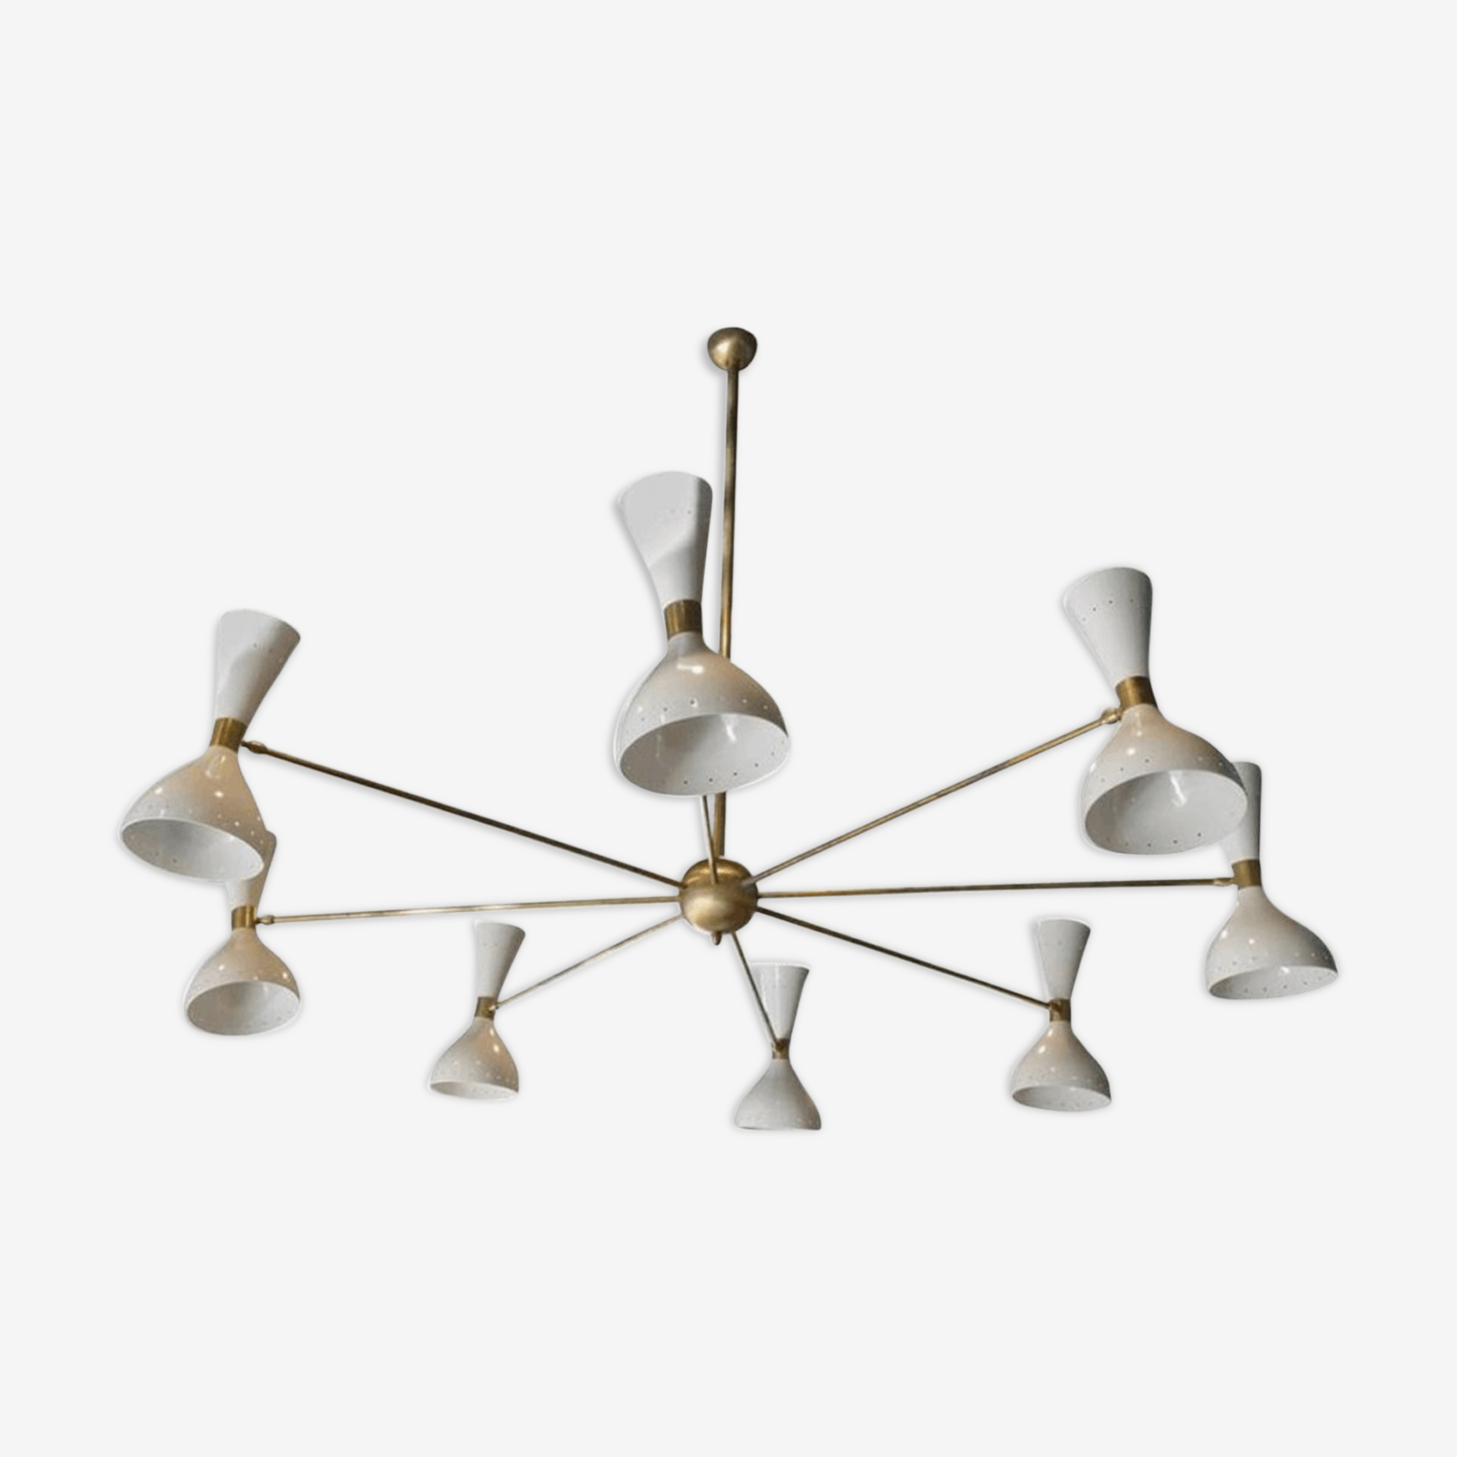 Chandelier made of brass and painted white metal